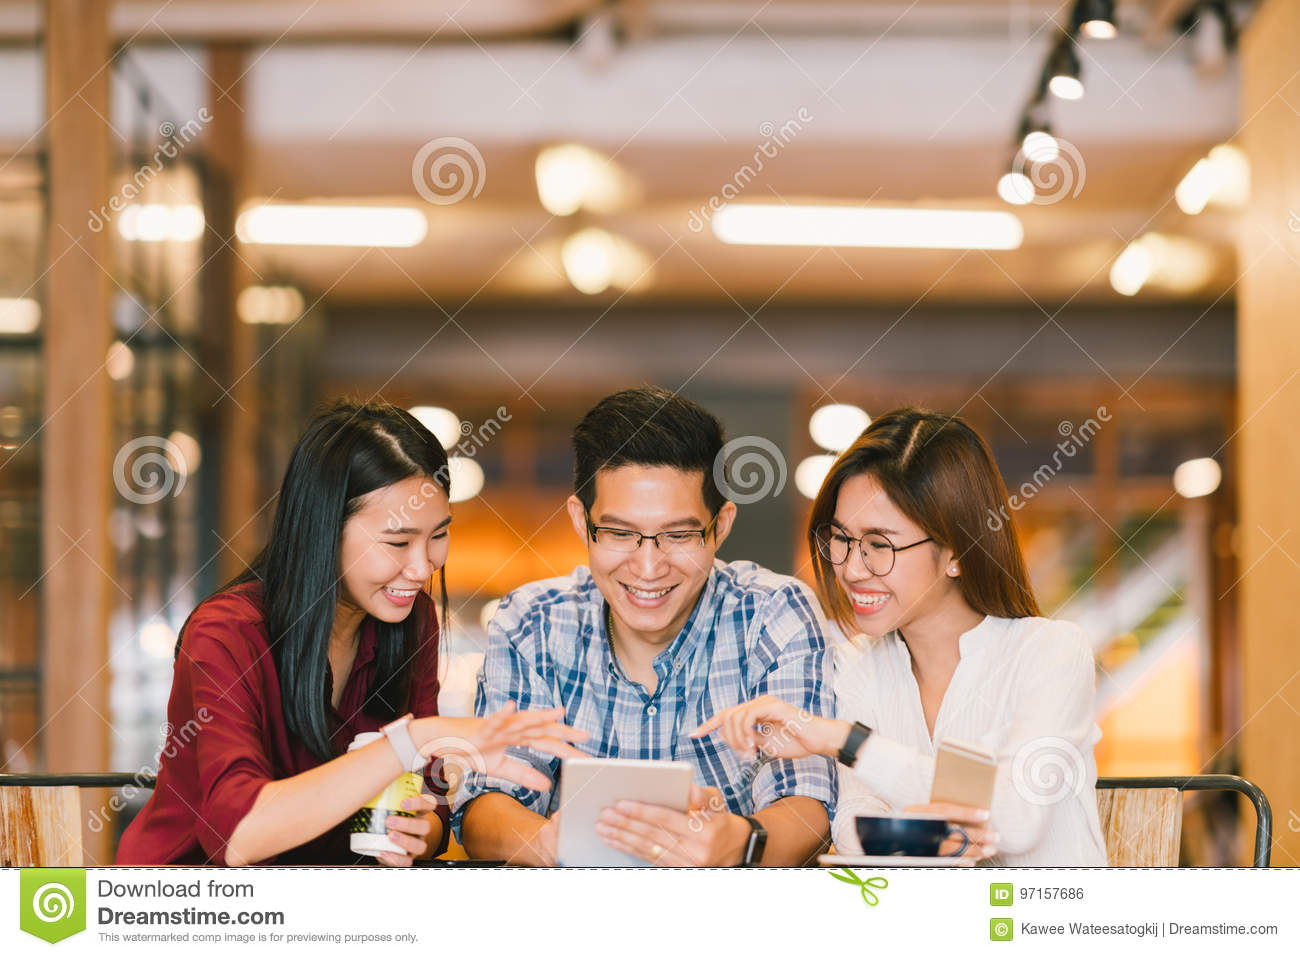 Young Asian college students or coworkers using digital tablet together at coffee shop, diverse group. Casual business, freelance